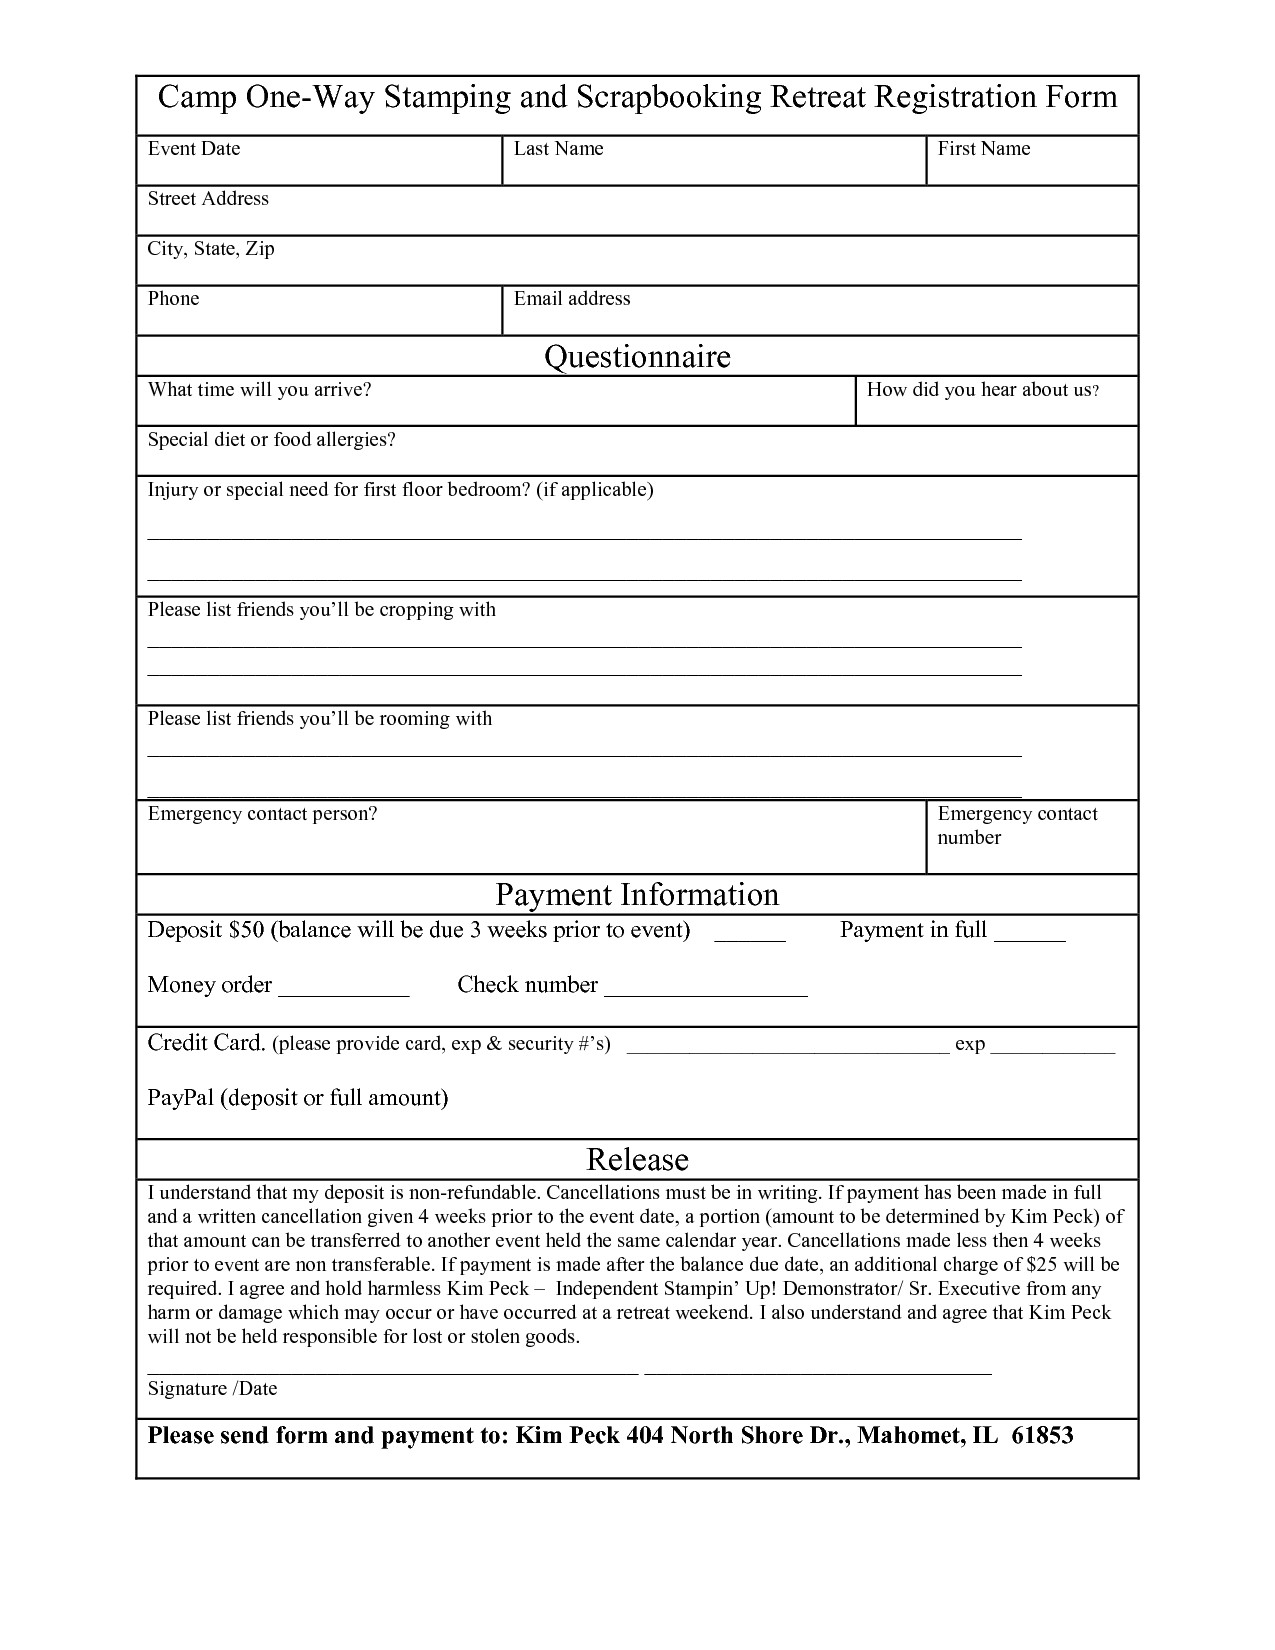 Free Registration forms Template Free Registration form Template Word Want A Free Refresher